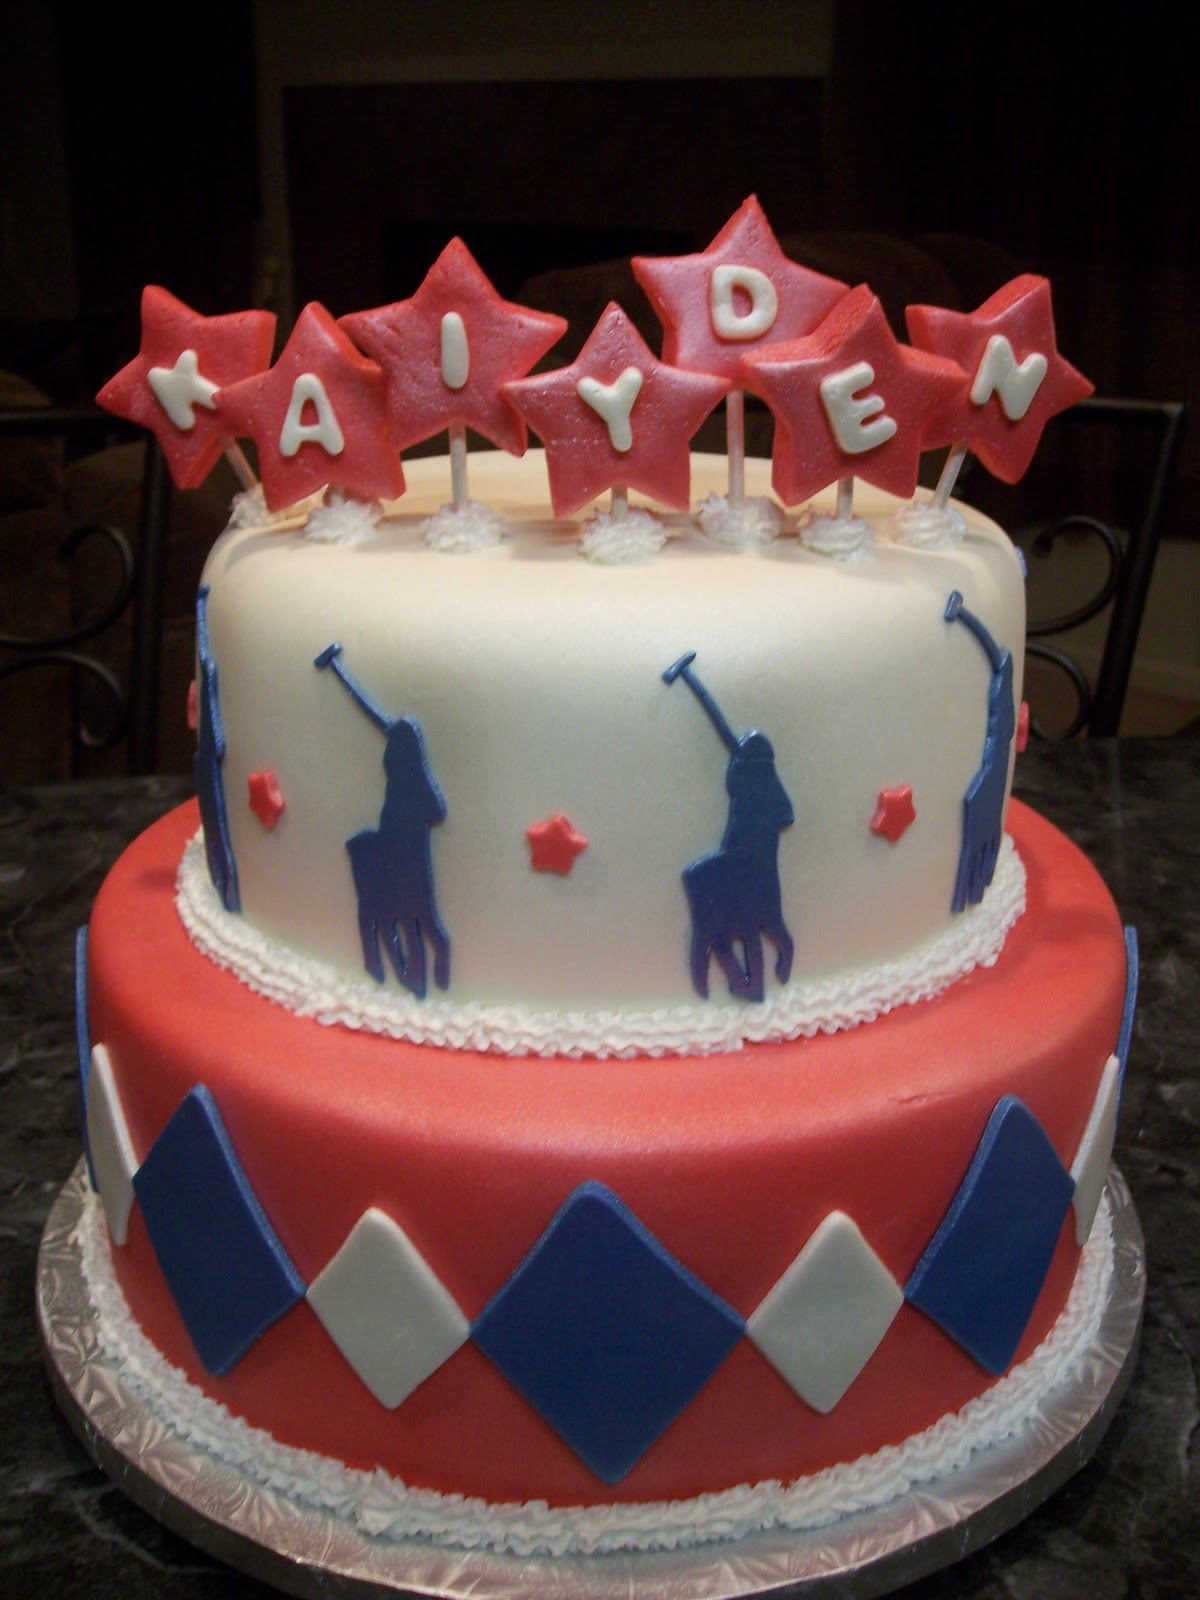 polo cake images